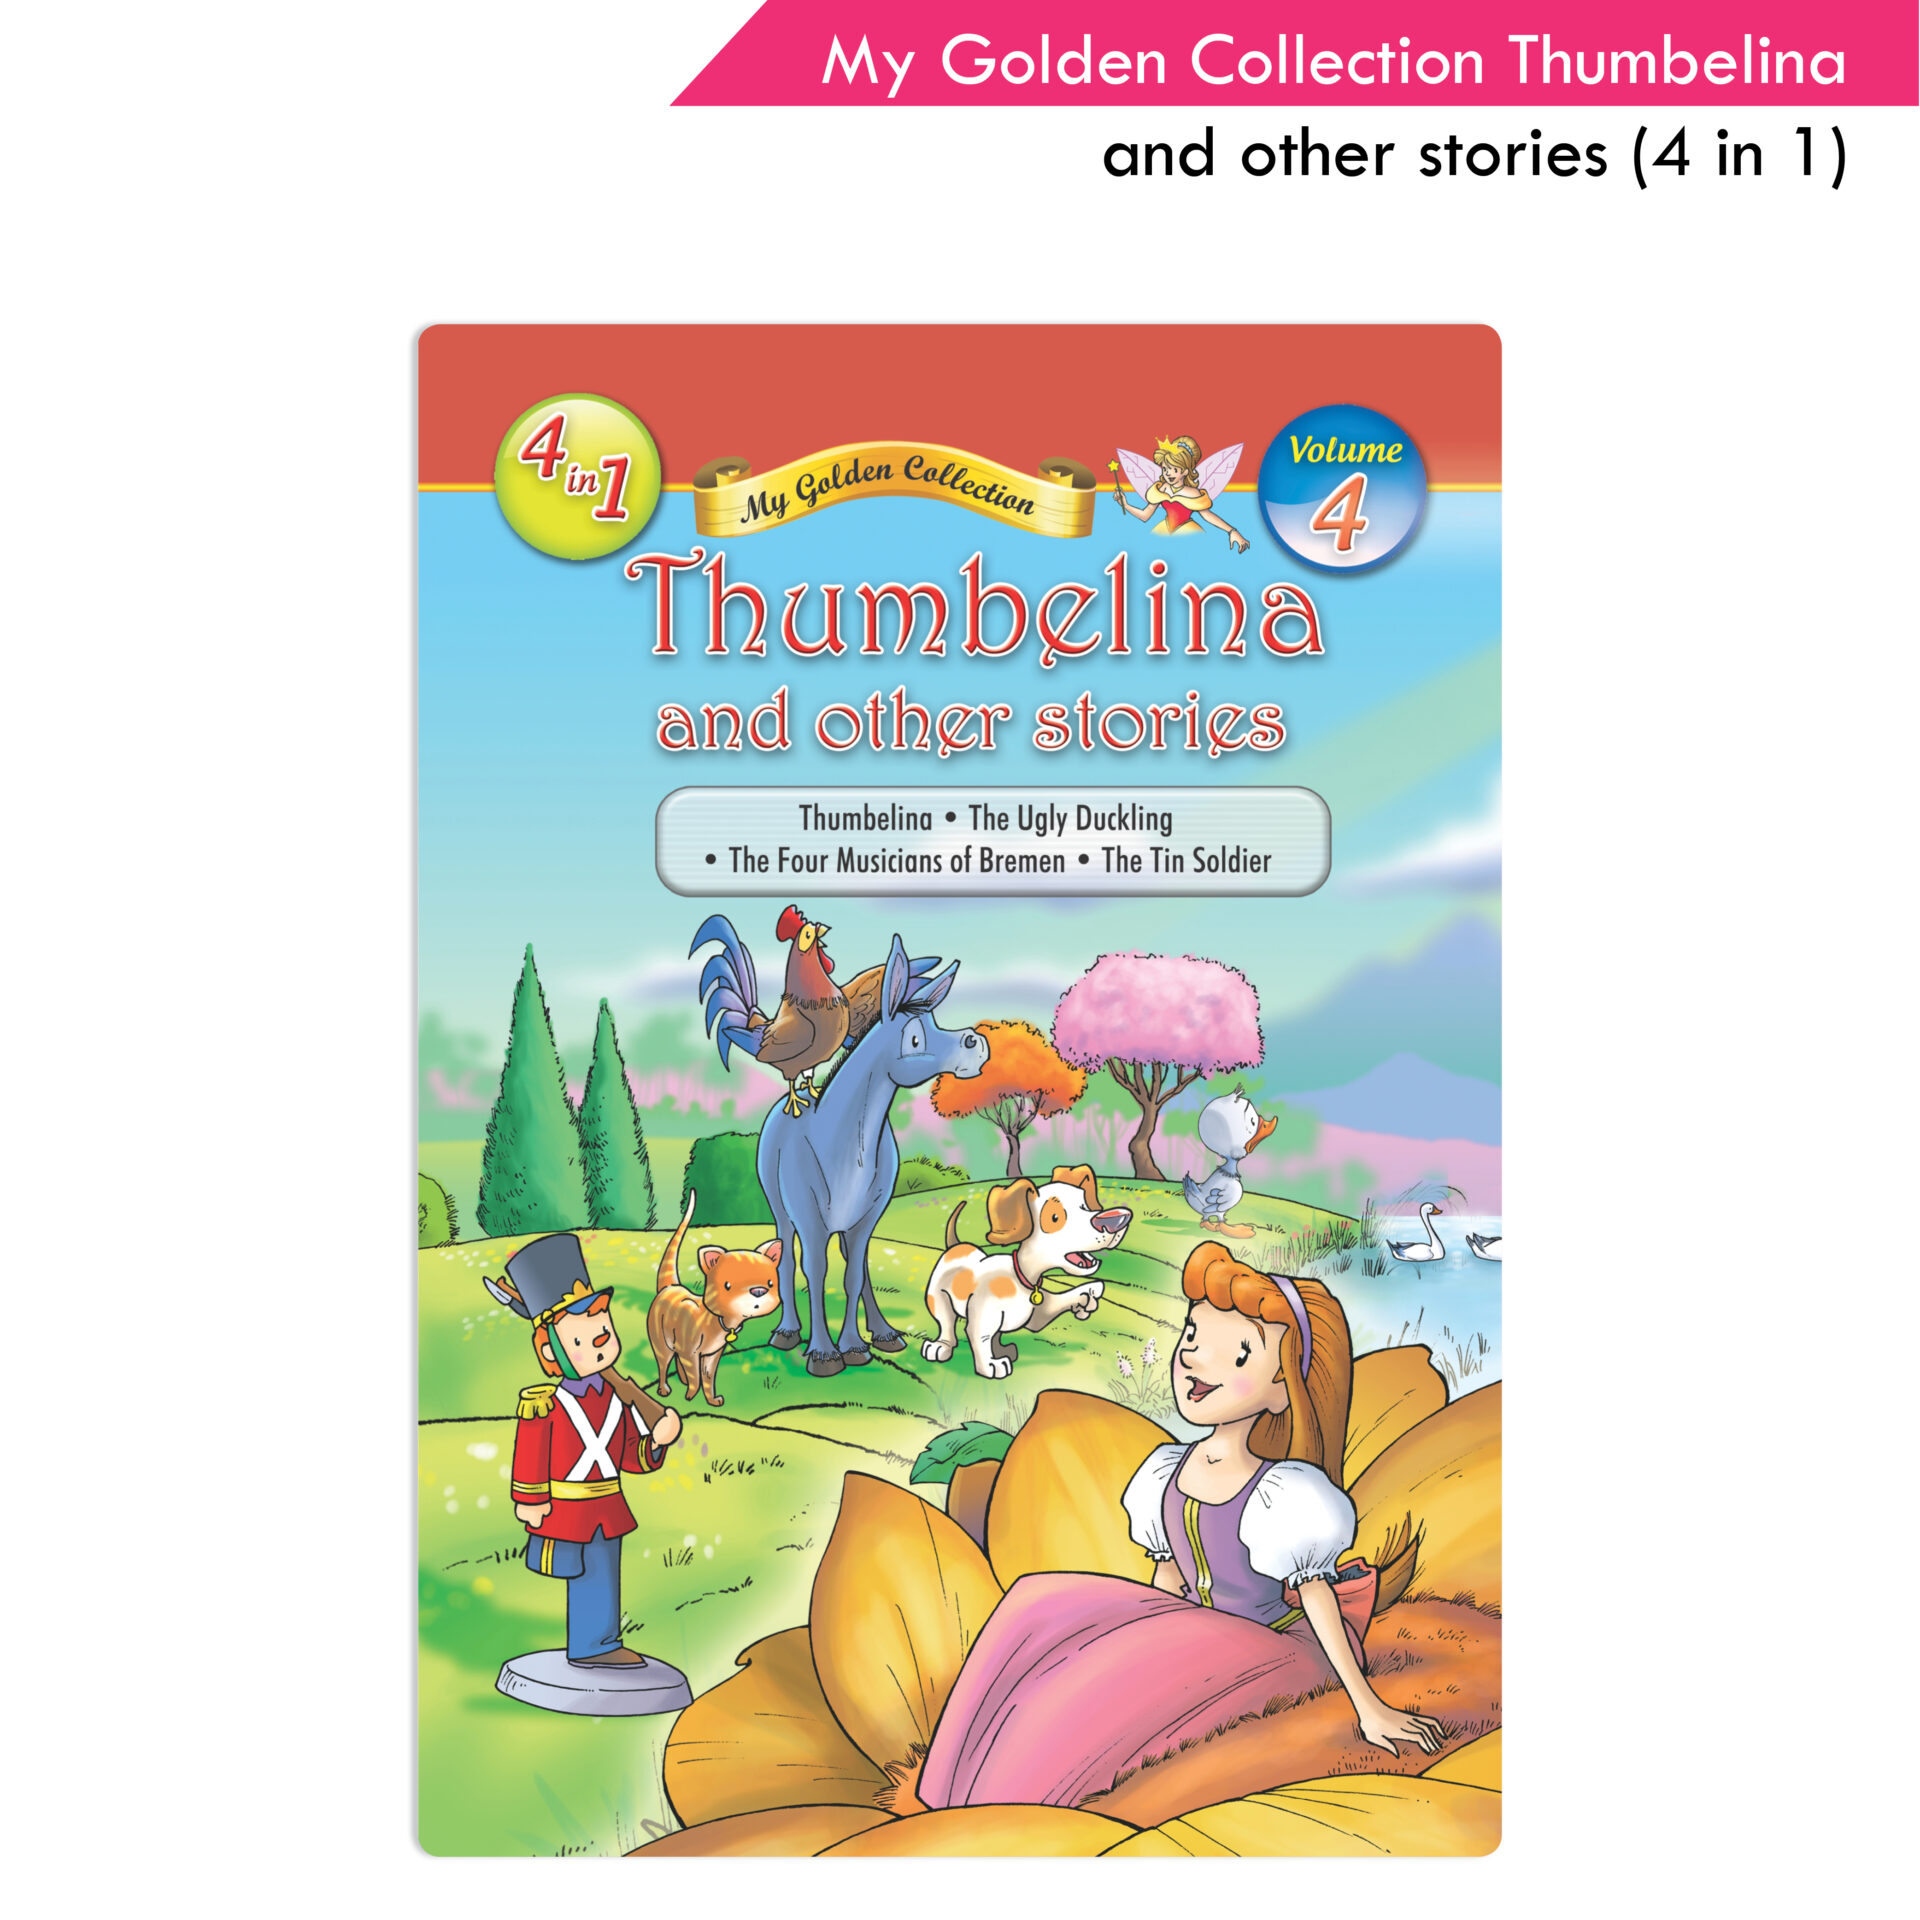 My Golden Collection Volume 4 Thumbelina and other Stories 1